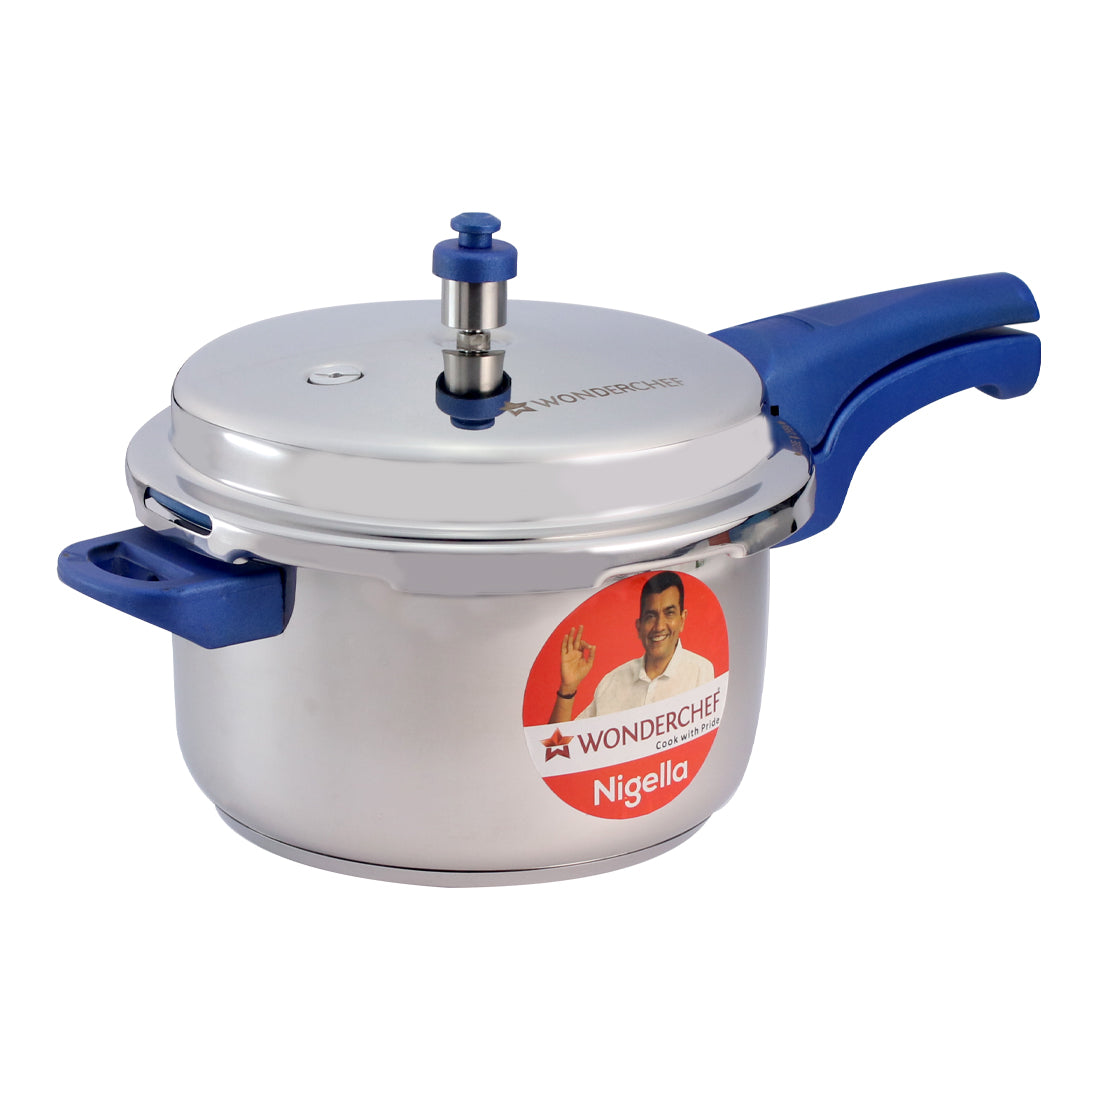 Nigella Induction Base Stainless Steel Pressure Cooker with Outer Lid, Blue, 7L